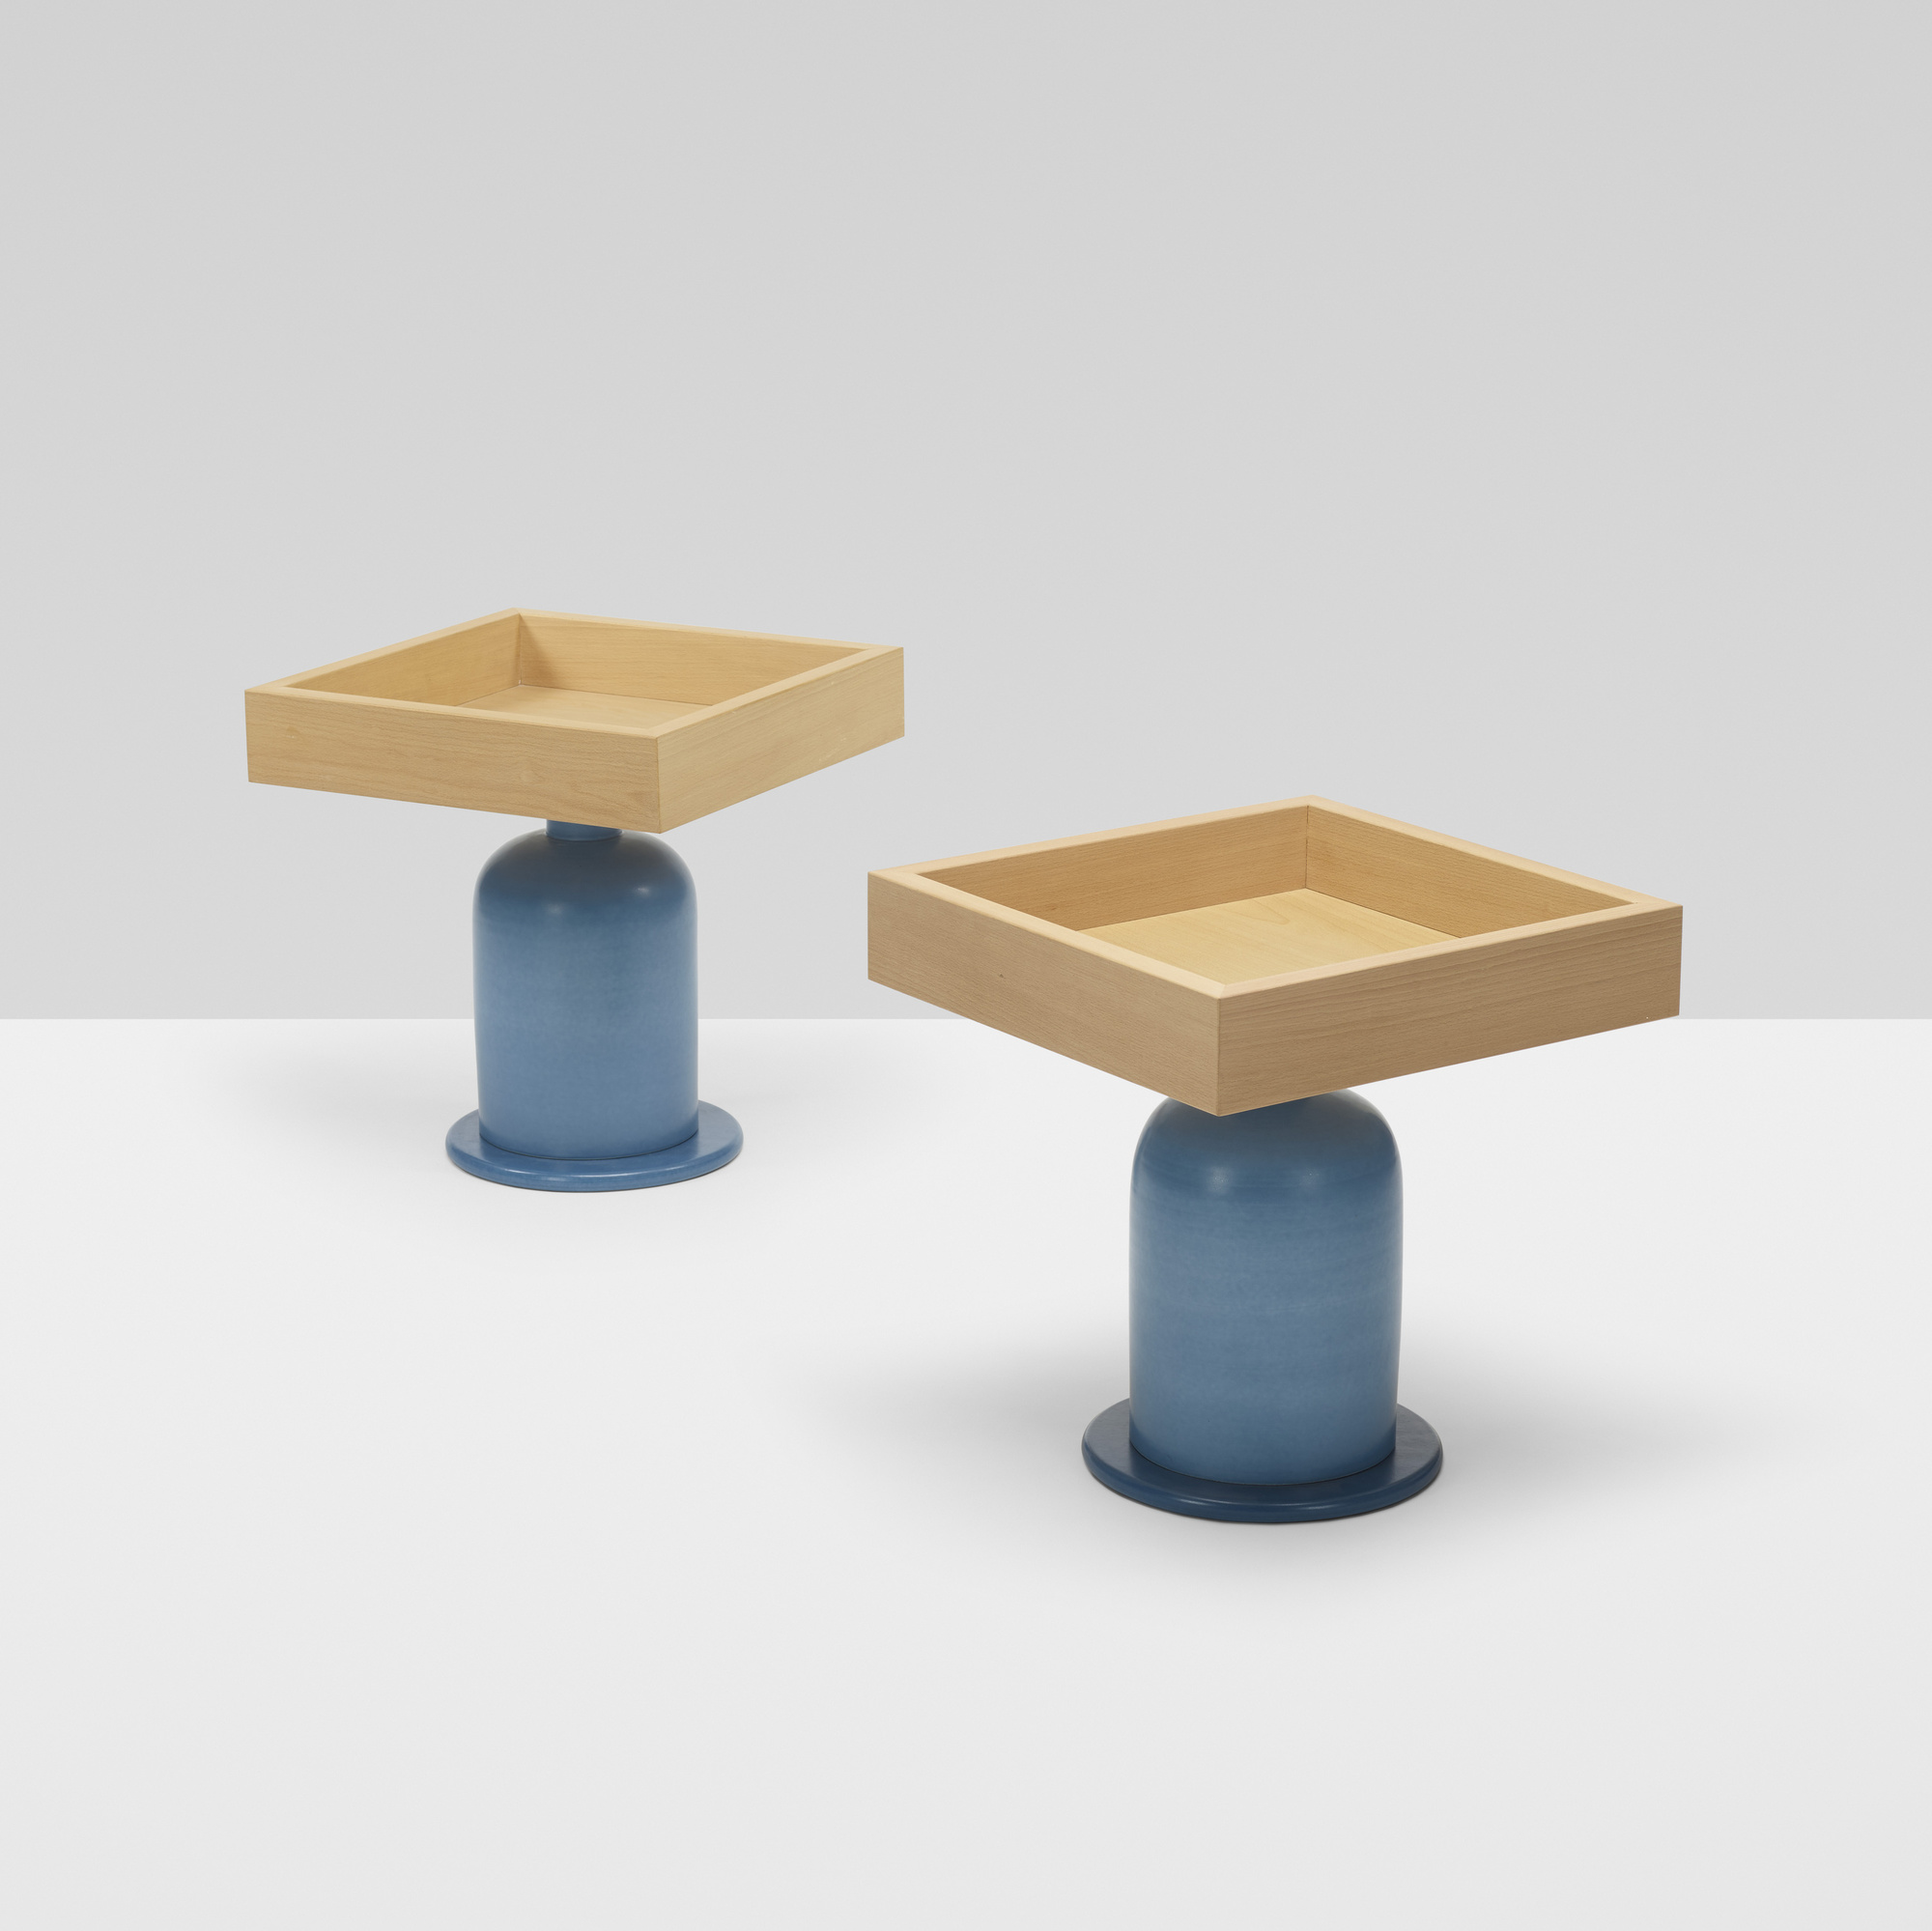 270: Ettore Sottsass / occasional tables, pair (1 of 5)